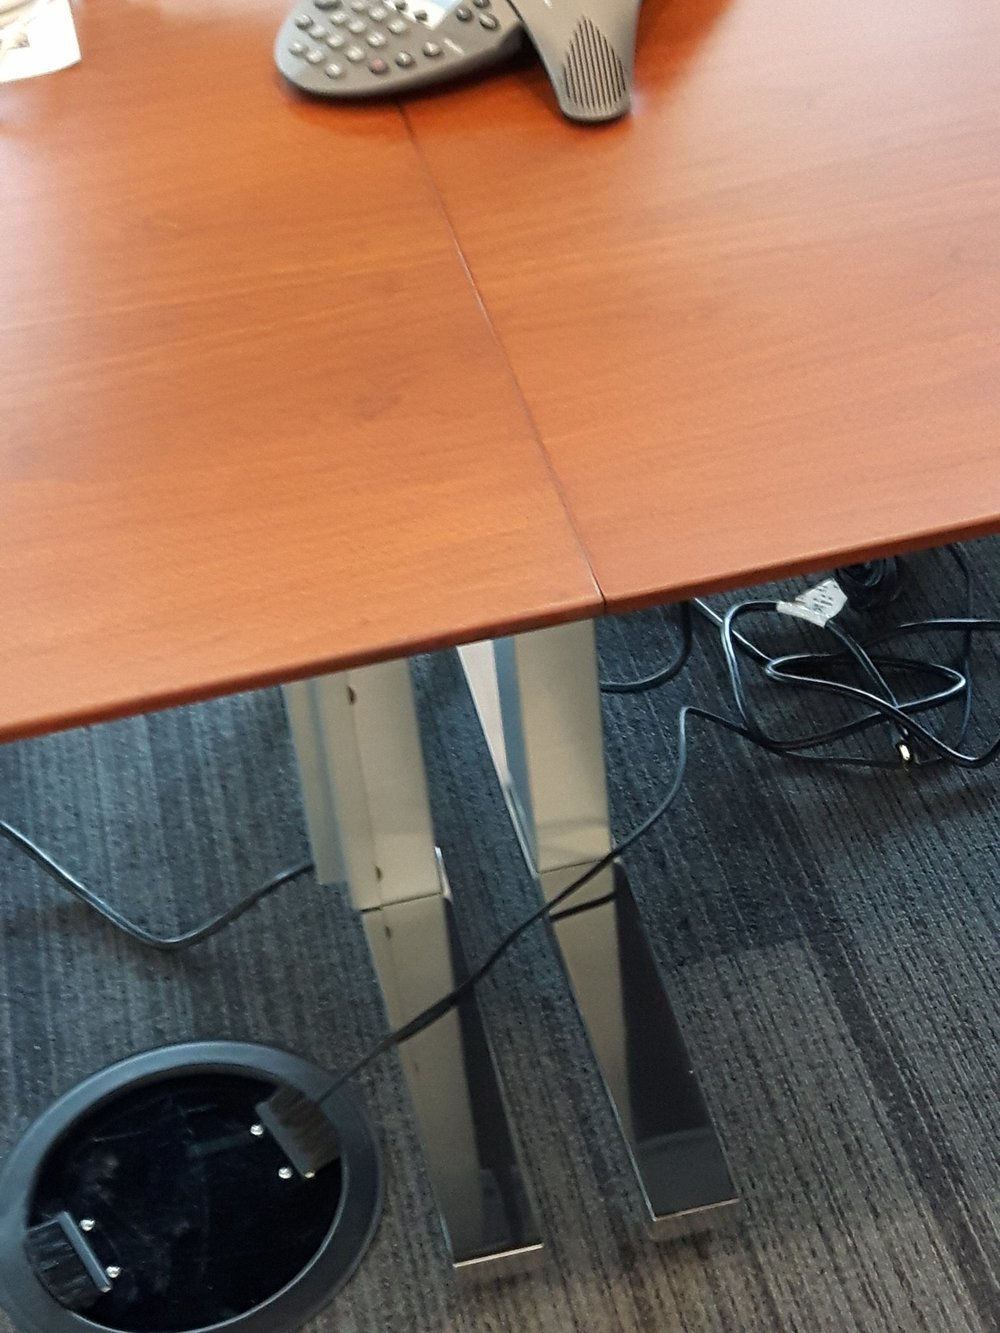 TUP BOARDROOM TABLE REPAIR TO REPLACE LARGE WOOD CHUNK MISSING FROM TABLE EDGE AFTER.jpg